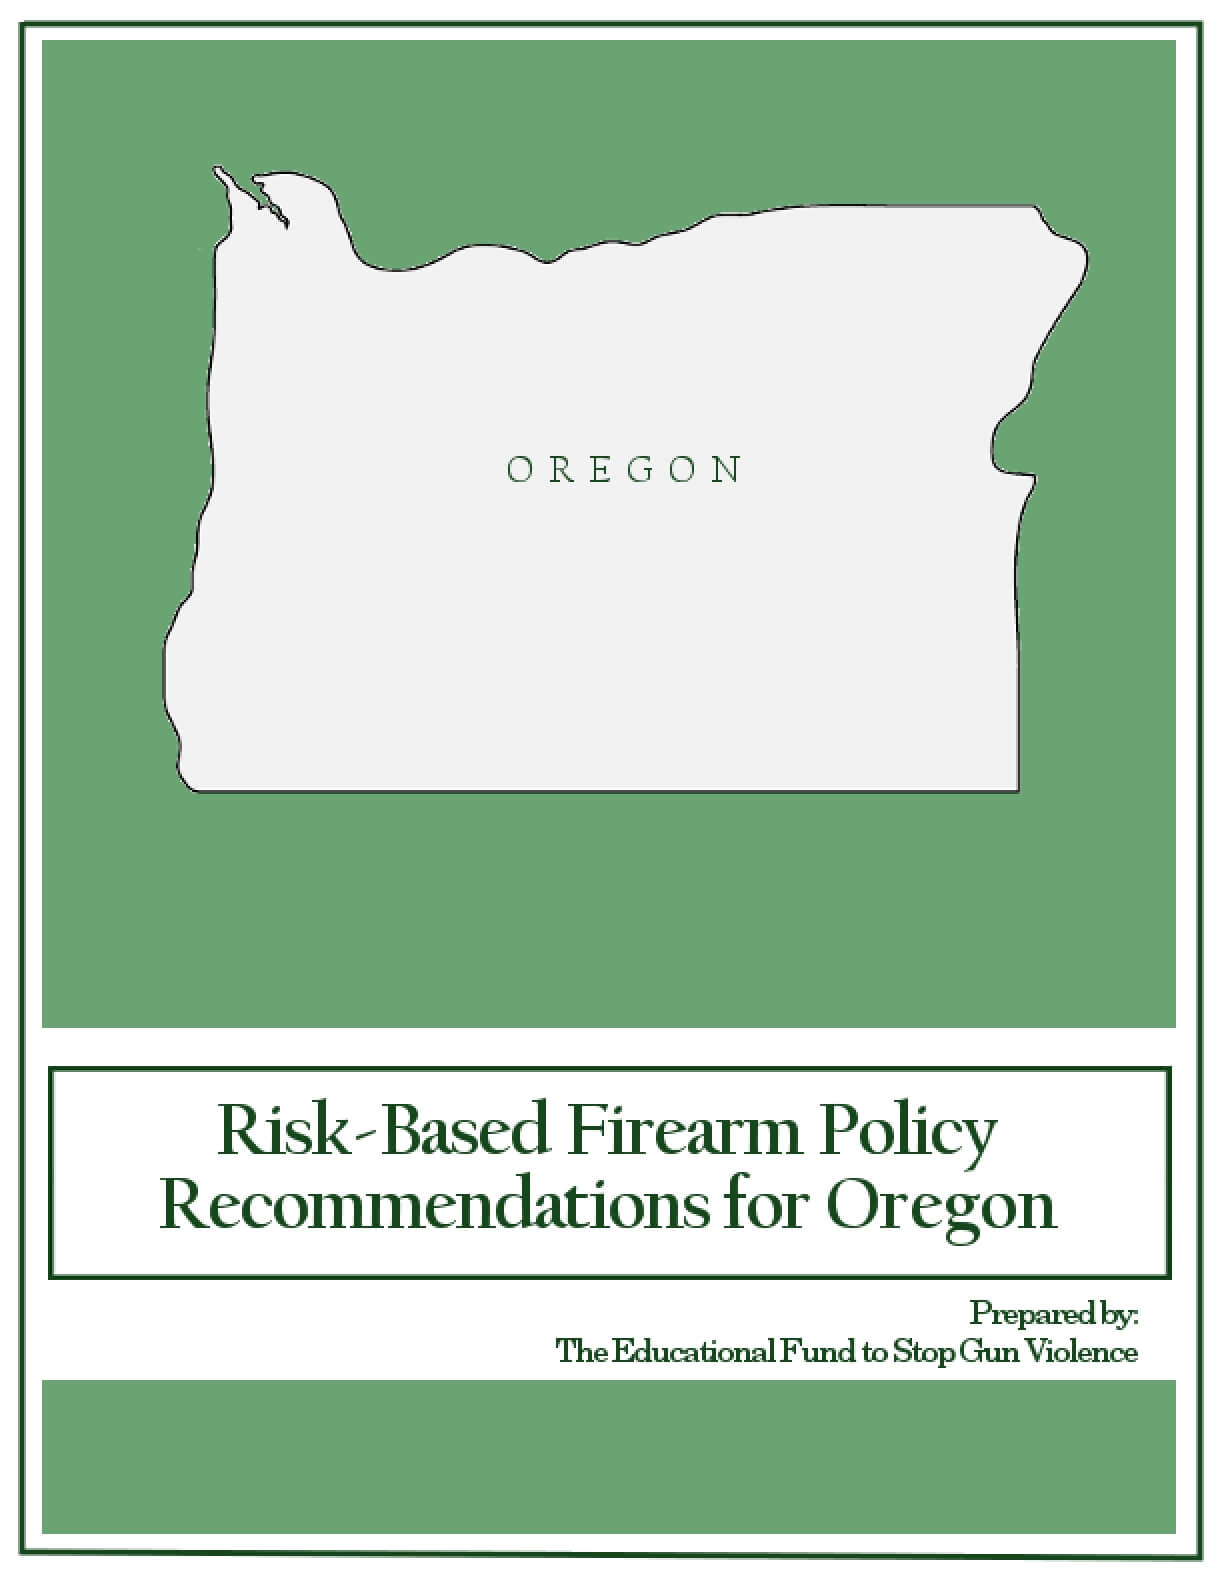 Risk-Based Firearm Policy Recommendations for Oregon